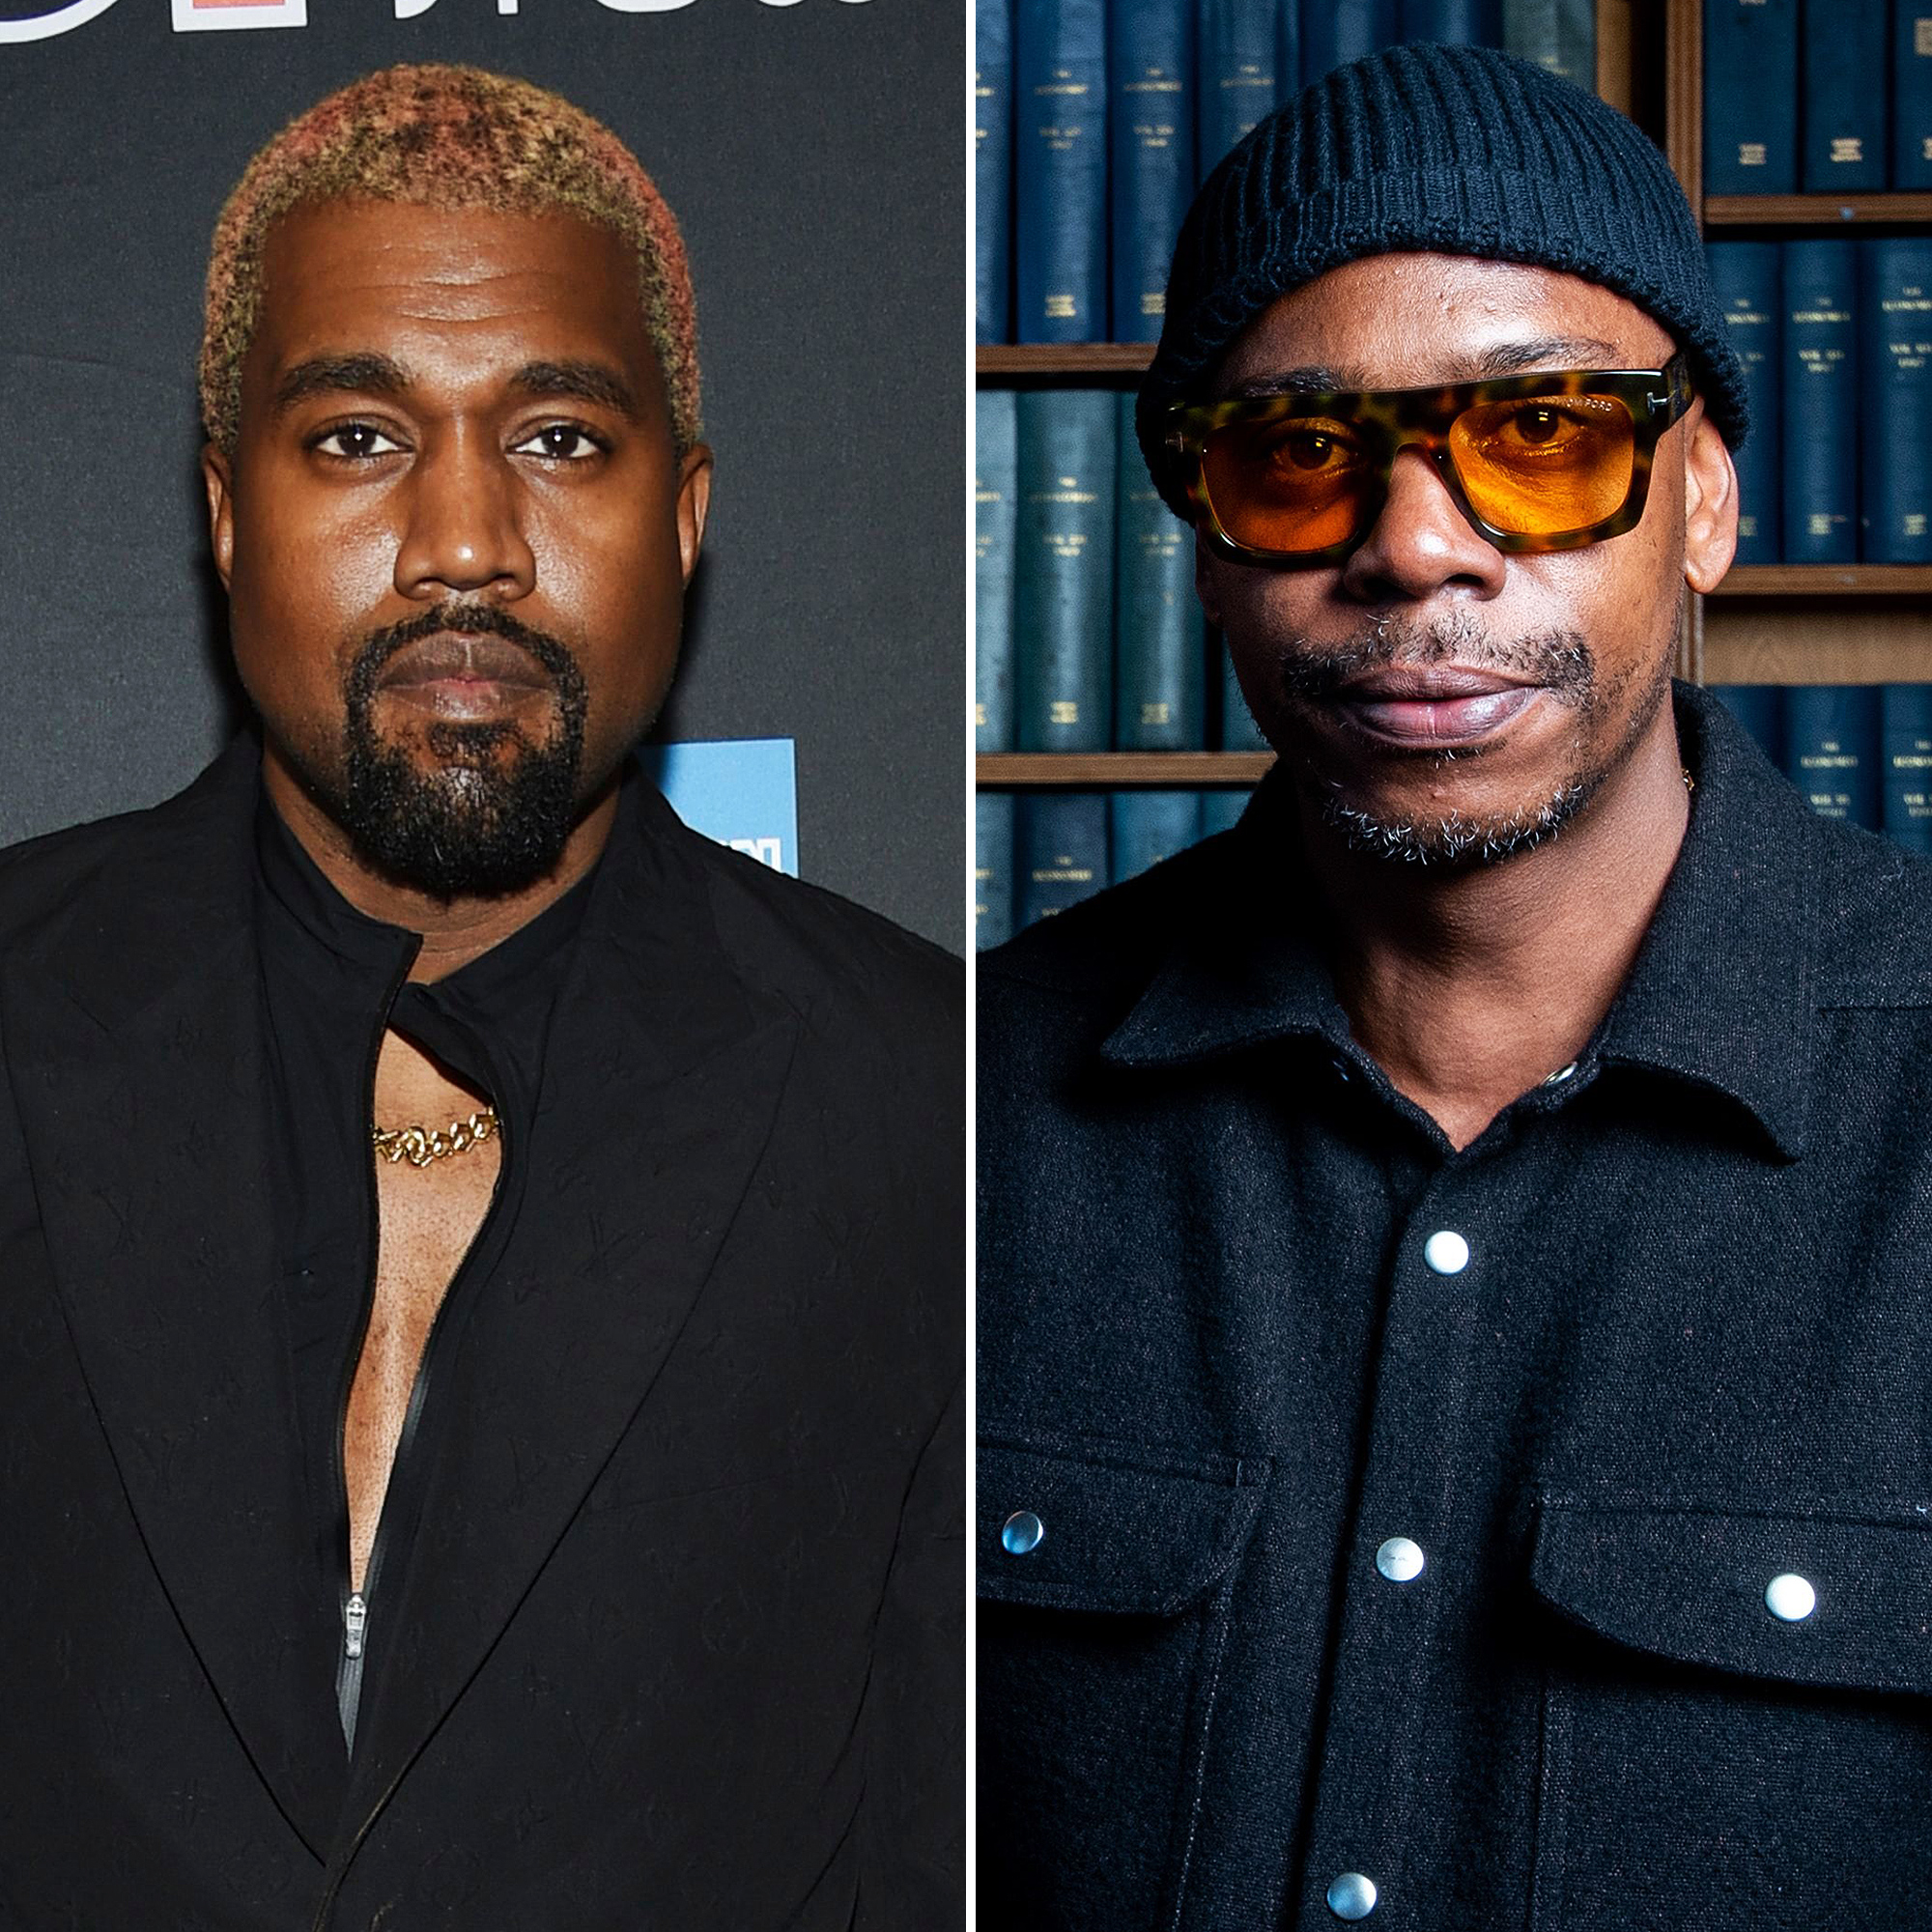 Kanye West Reveals True Friend Dave Chappelle Flew to Wyoming to Check on Him 1